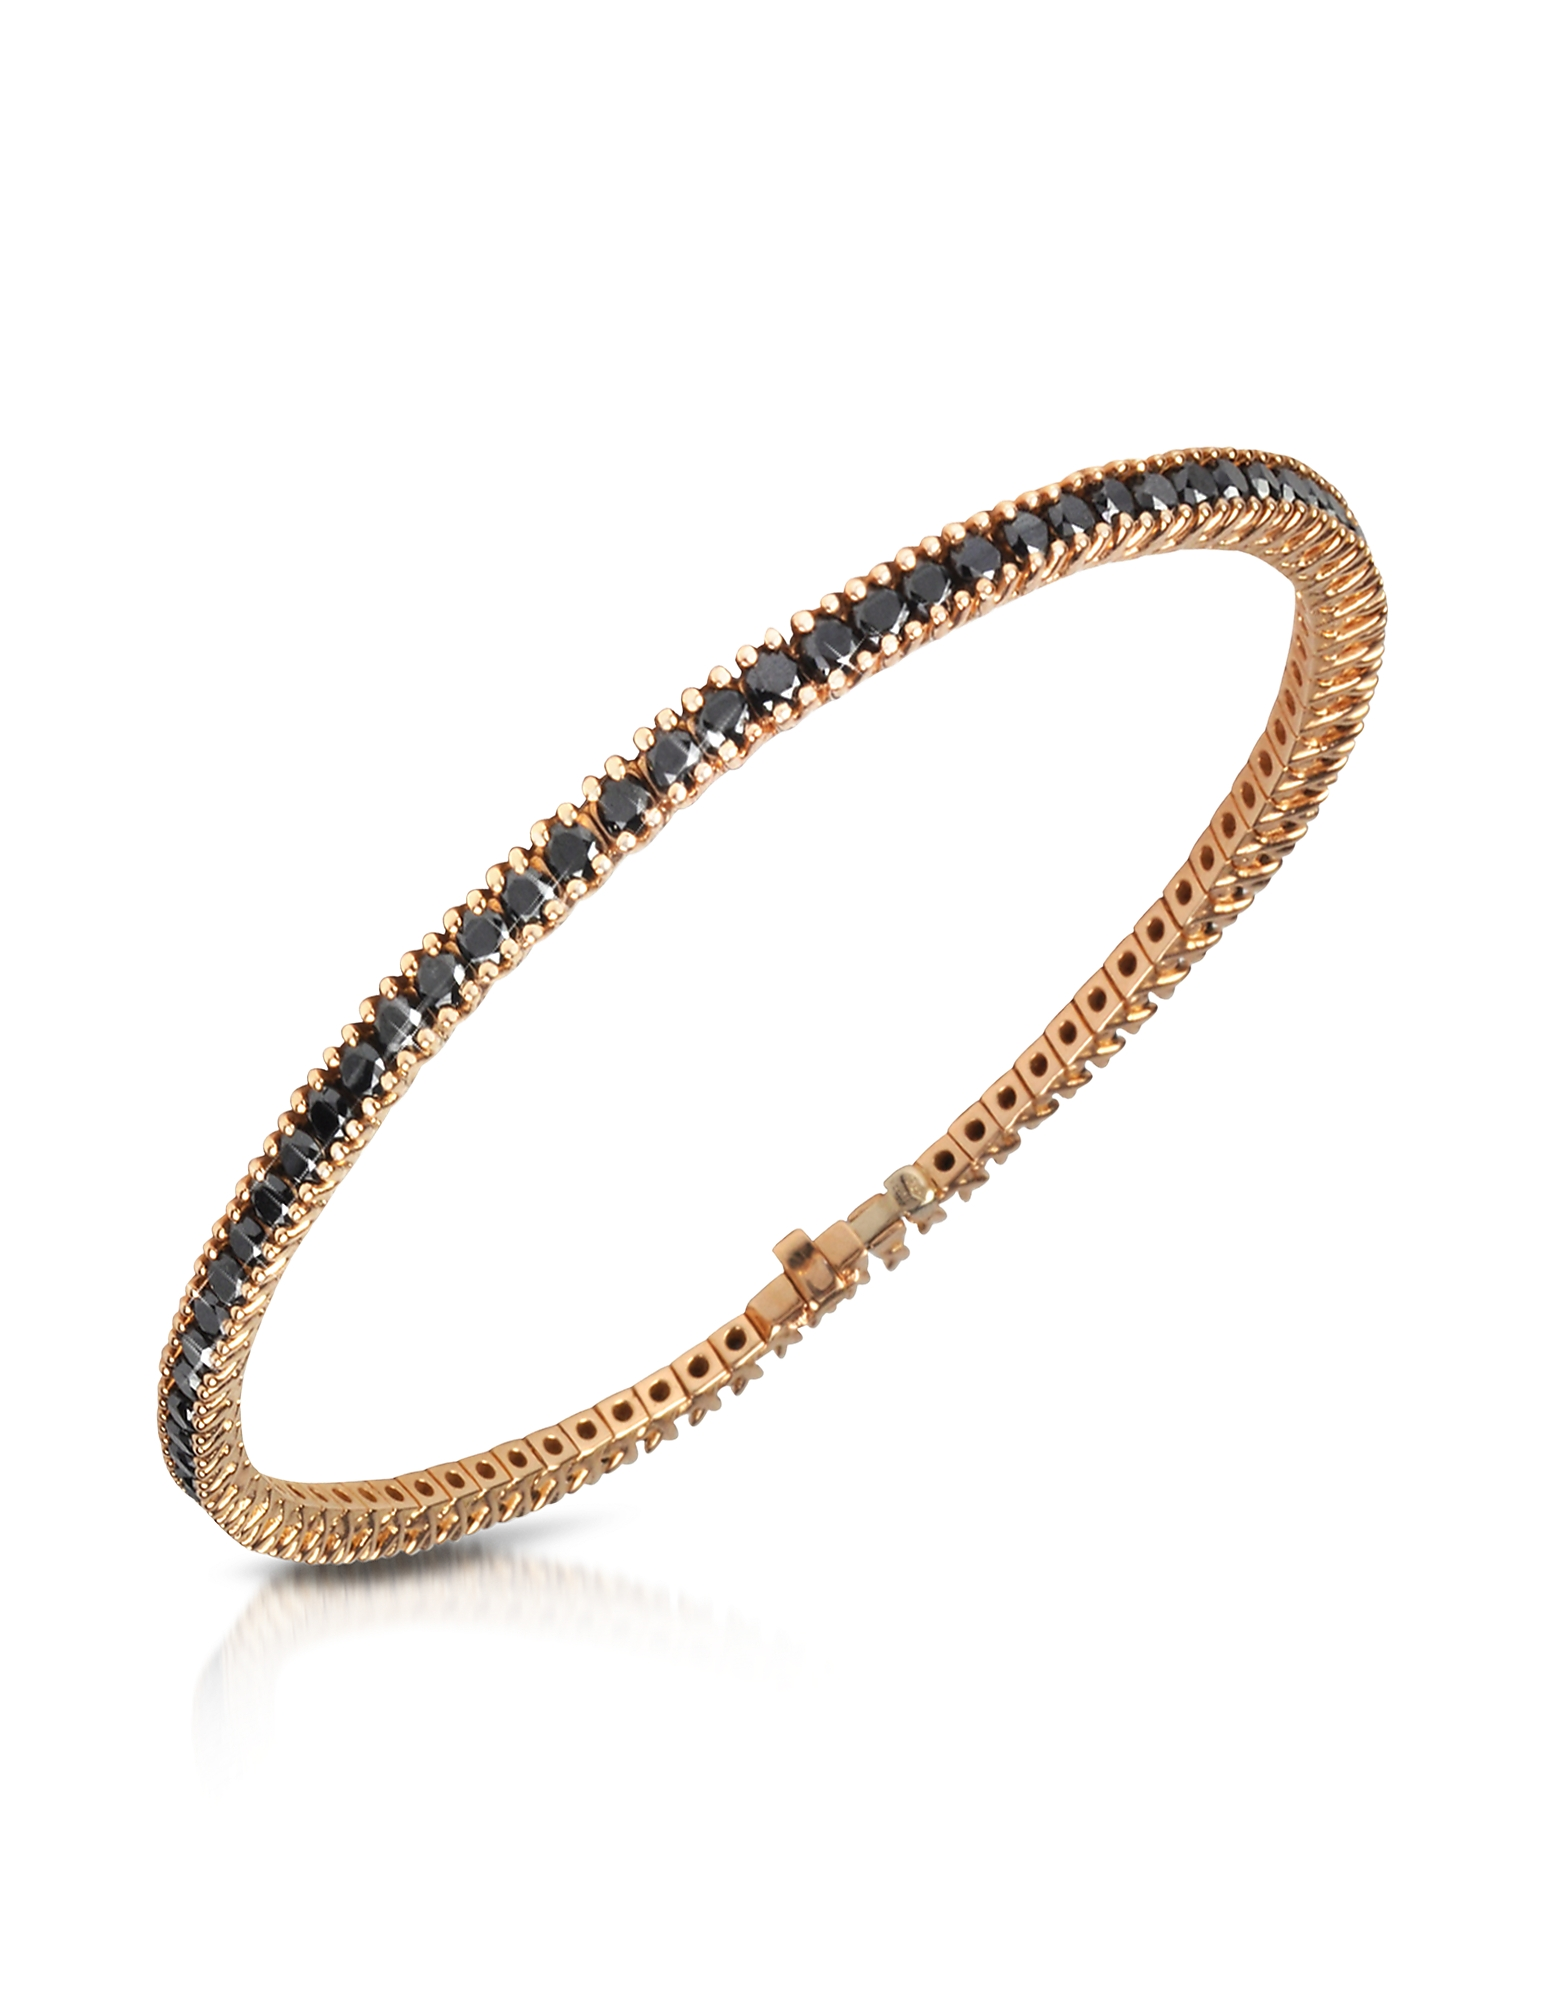 Forzieri Bracelets, Black Diamond Eternity 18K Gold Tennis Bracelet